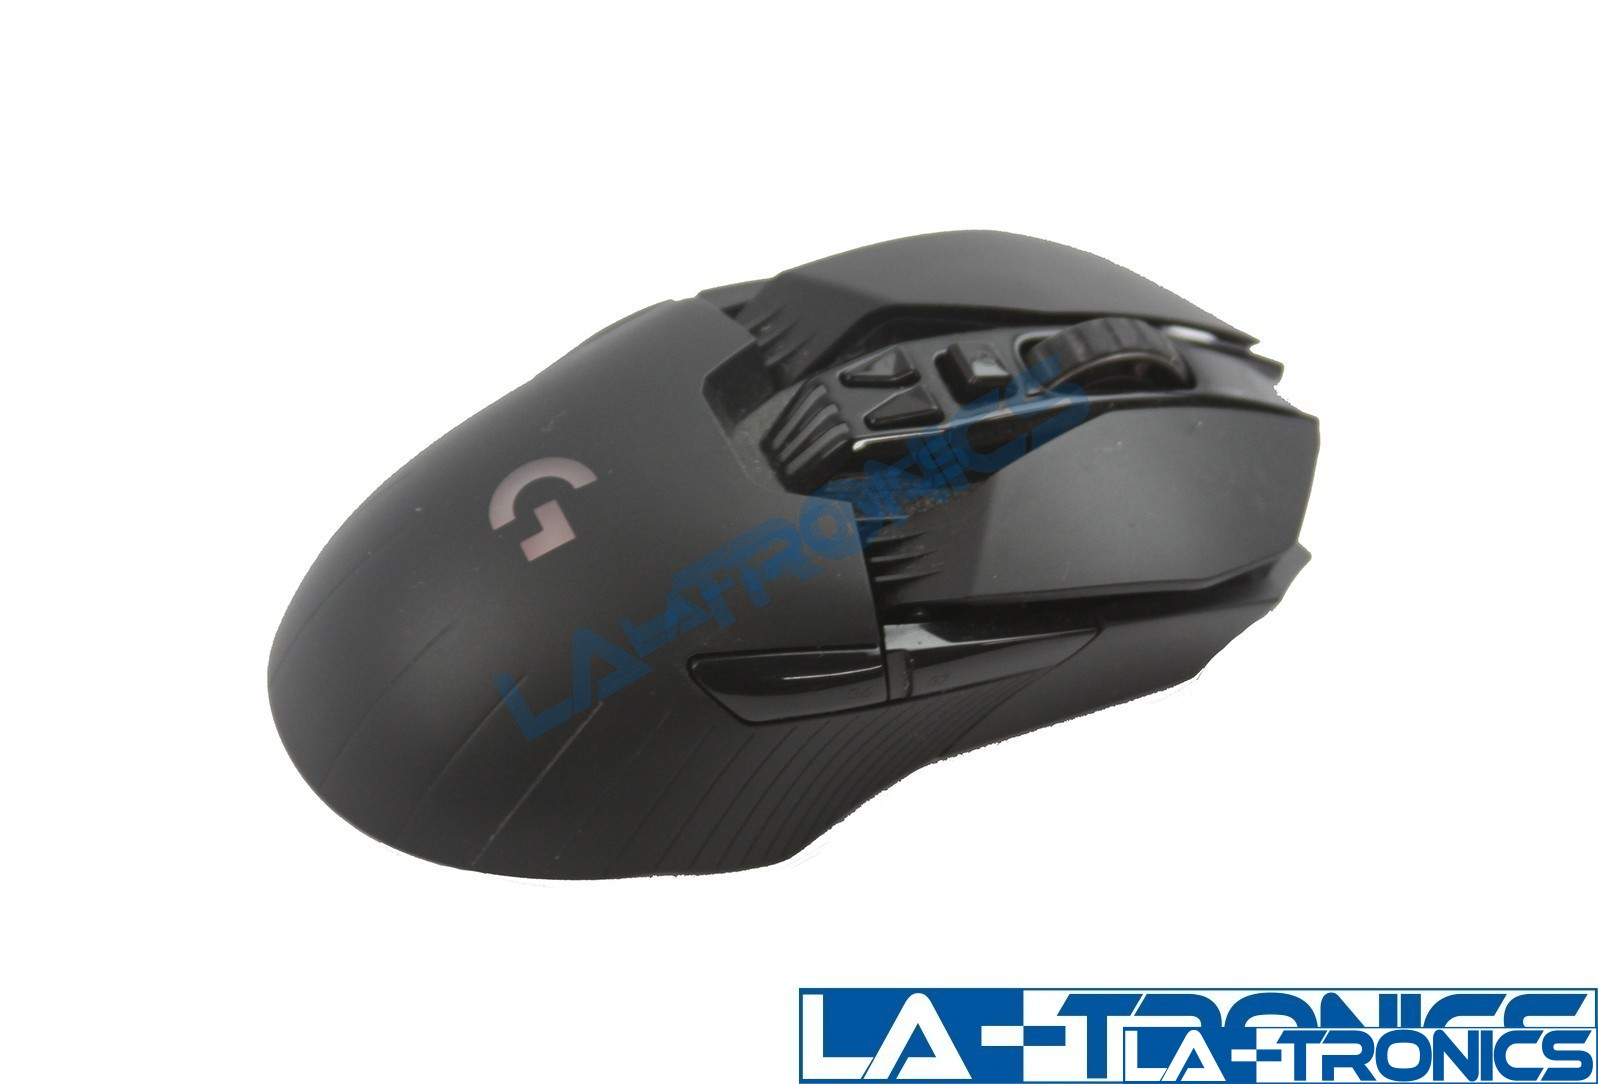 Title: Logitech G903 LIGHTSPEED Wired Optical Black Gaming Mouse - 910-005083